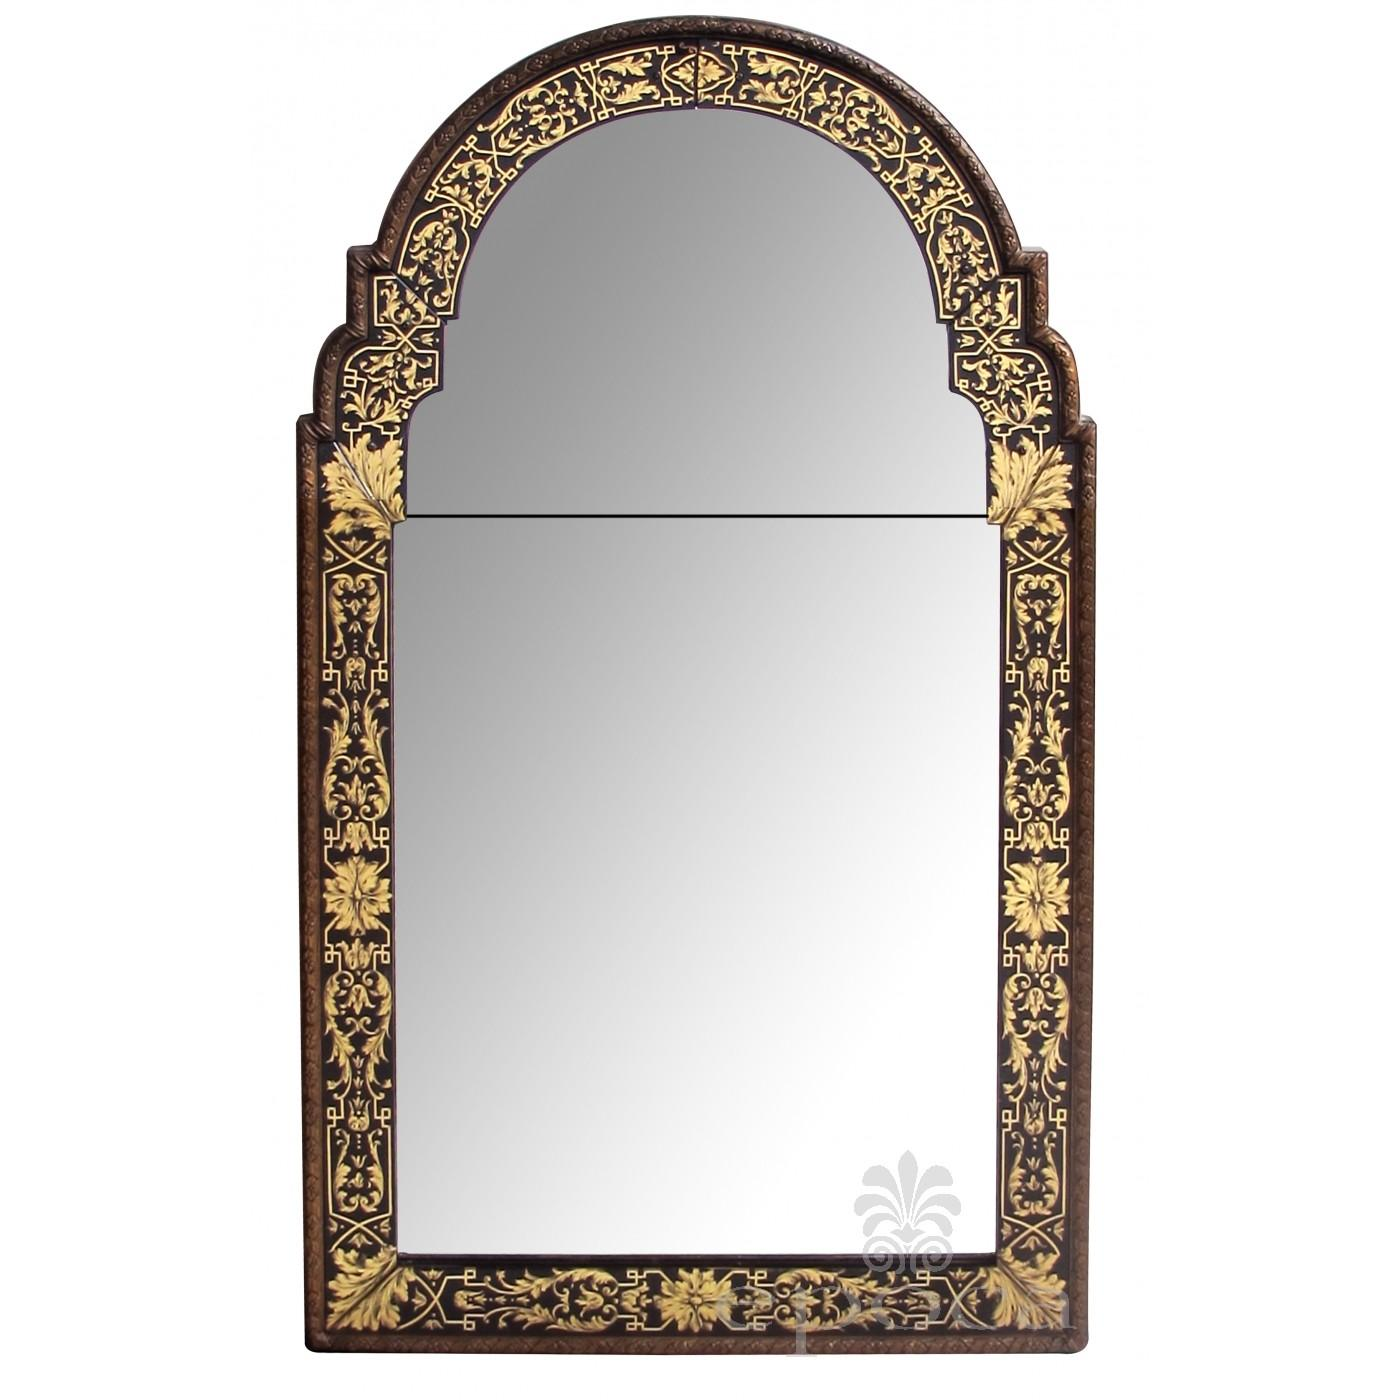 Stylish Italian Queen Anne Style Eglomise Mirror